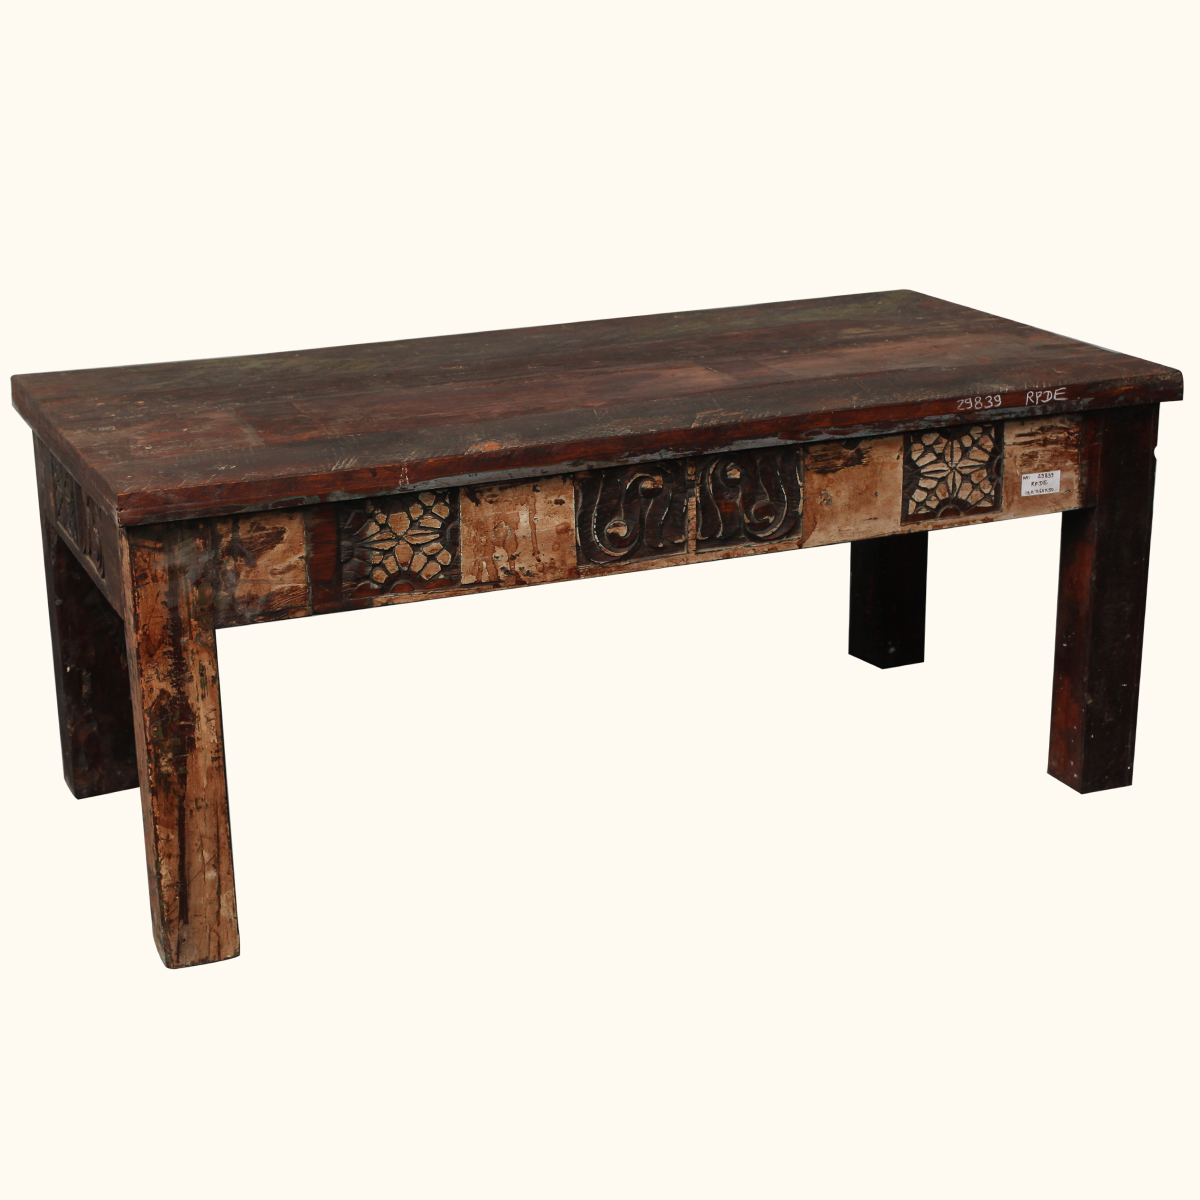 Hand carved rustic reclaimed wood multi color coffee table furniture ebay Carved wood coffee table